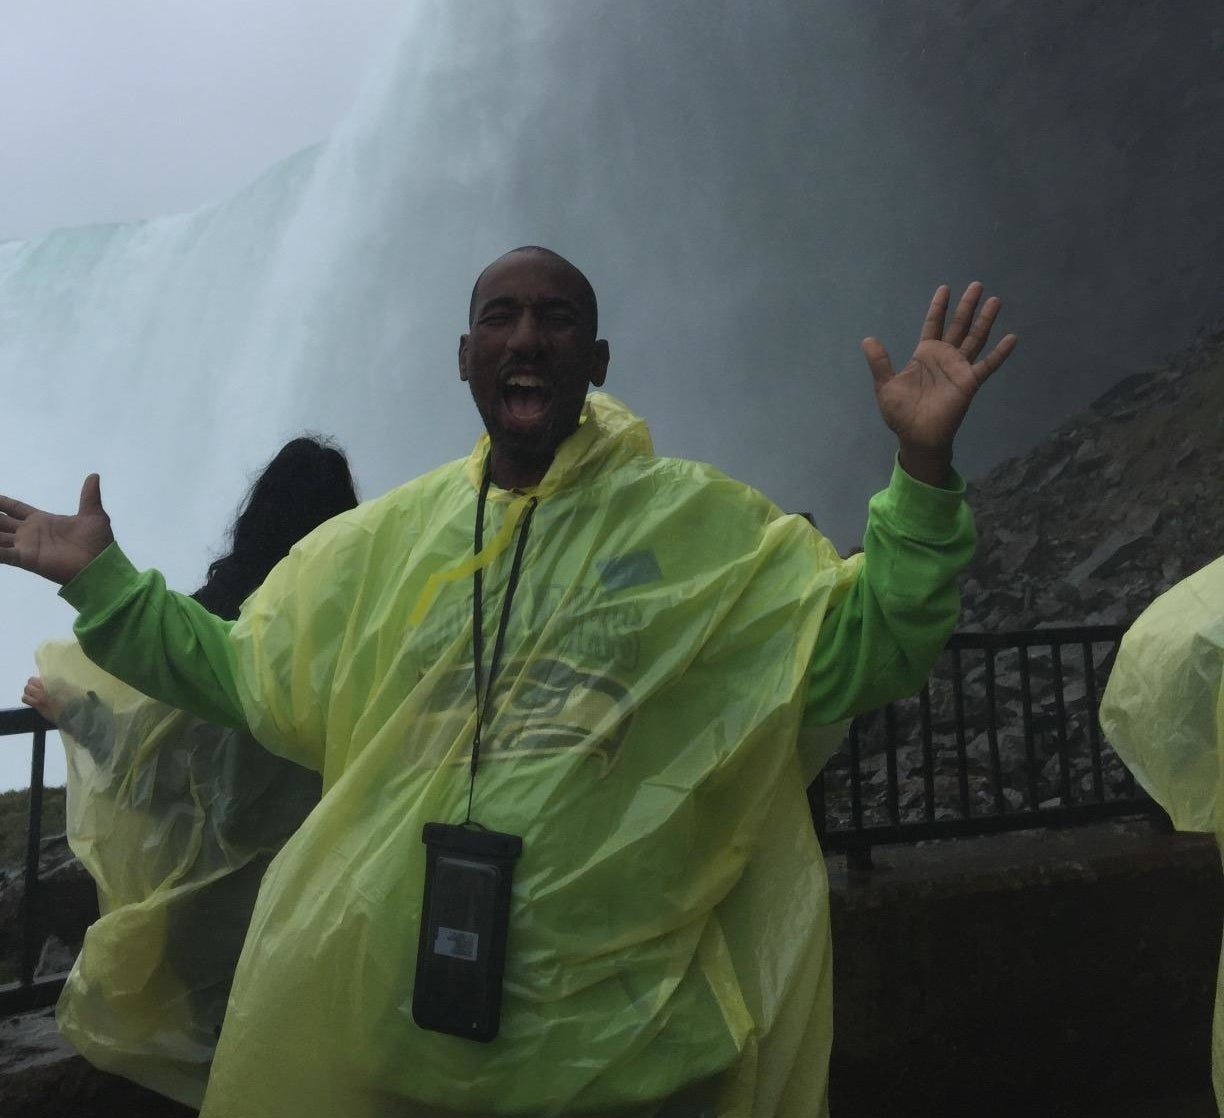 reviewer in poncho excitedly poses in front of niagara falls with phone in pouch around neck